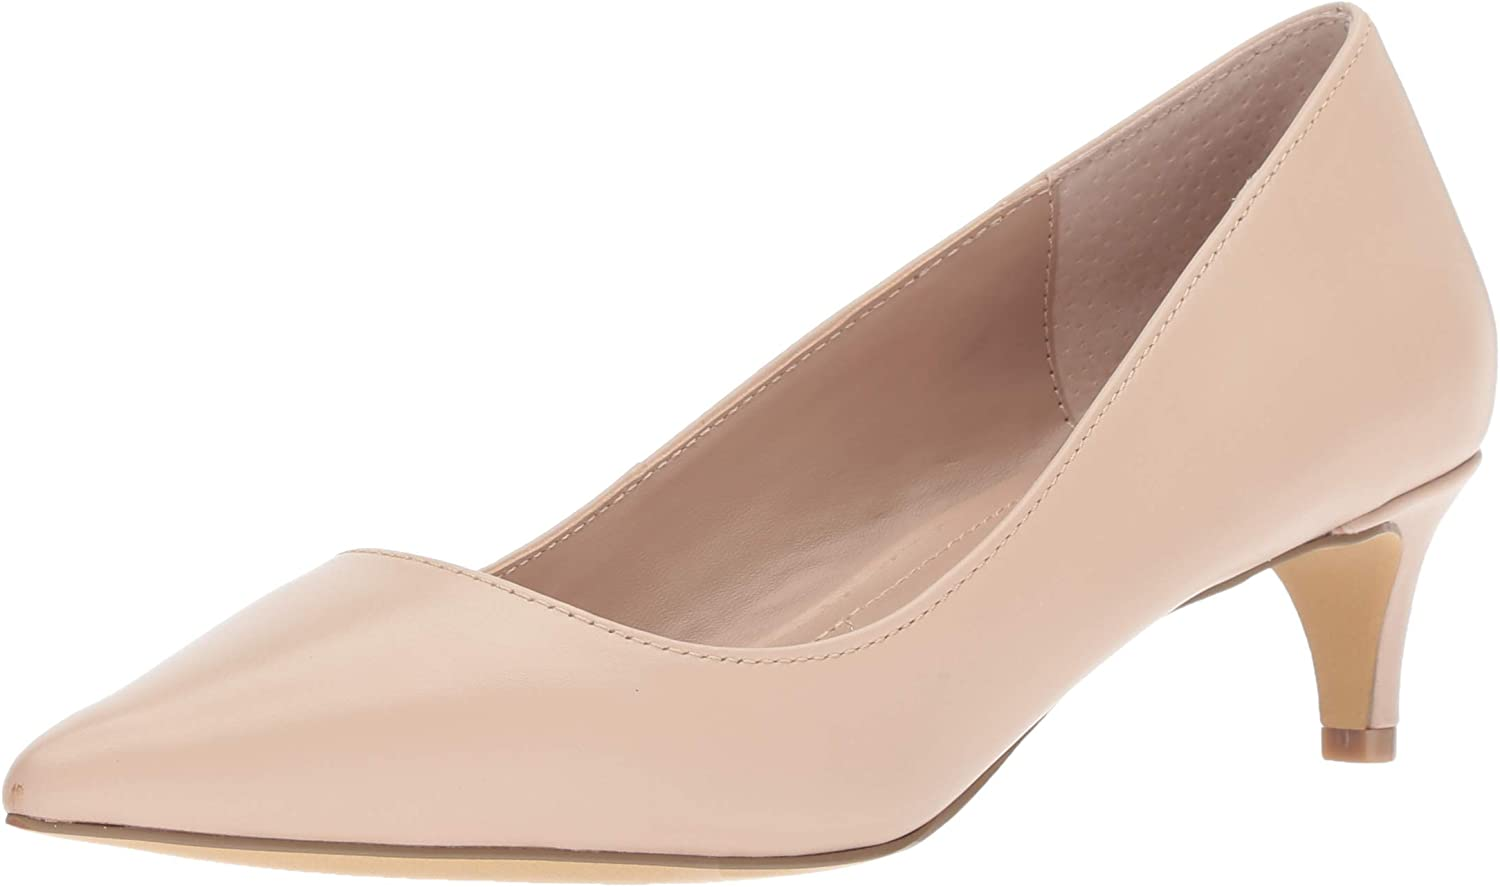 Charles by Charles David Womens Kitten Pump